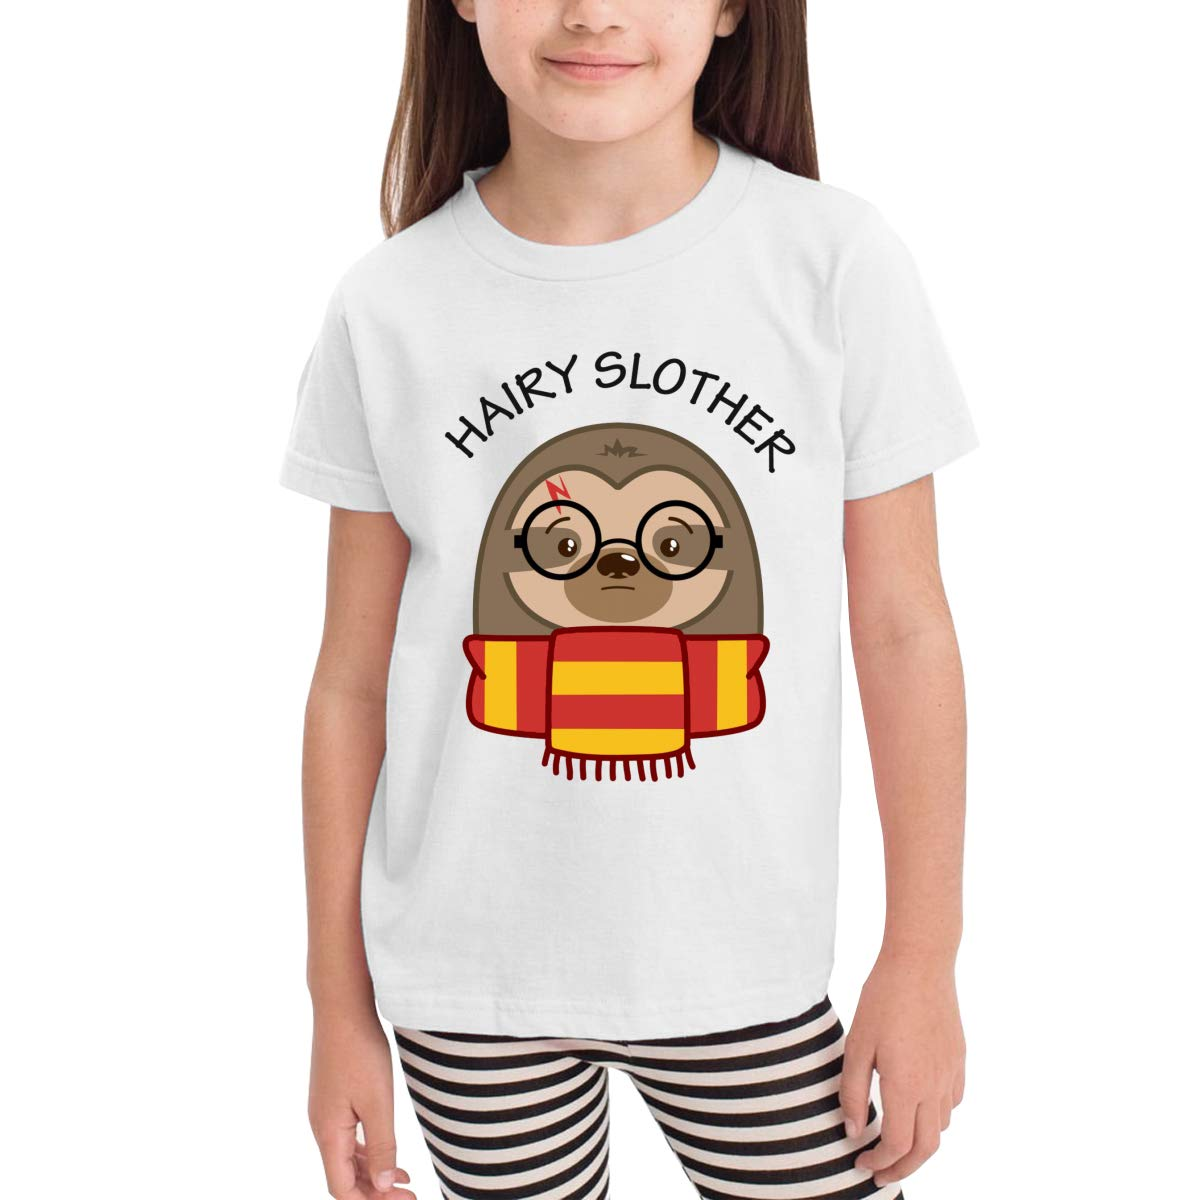 Hairy Slother Sloth Unisex Youths Short Sleeve T-Shirt Kids T-Shirt Tops Gray